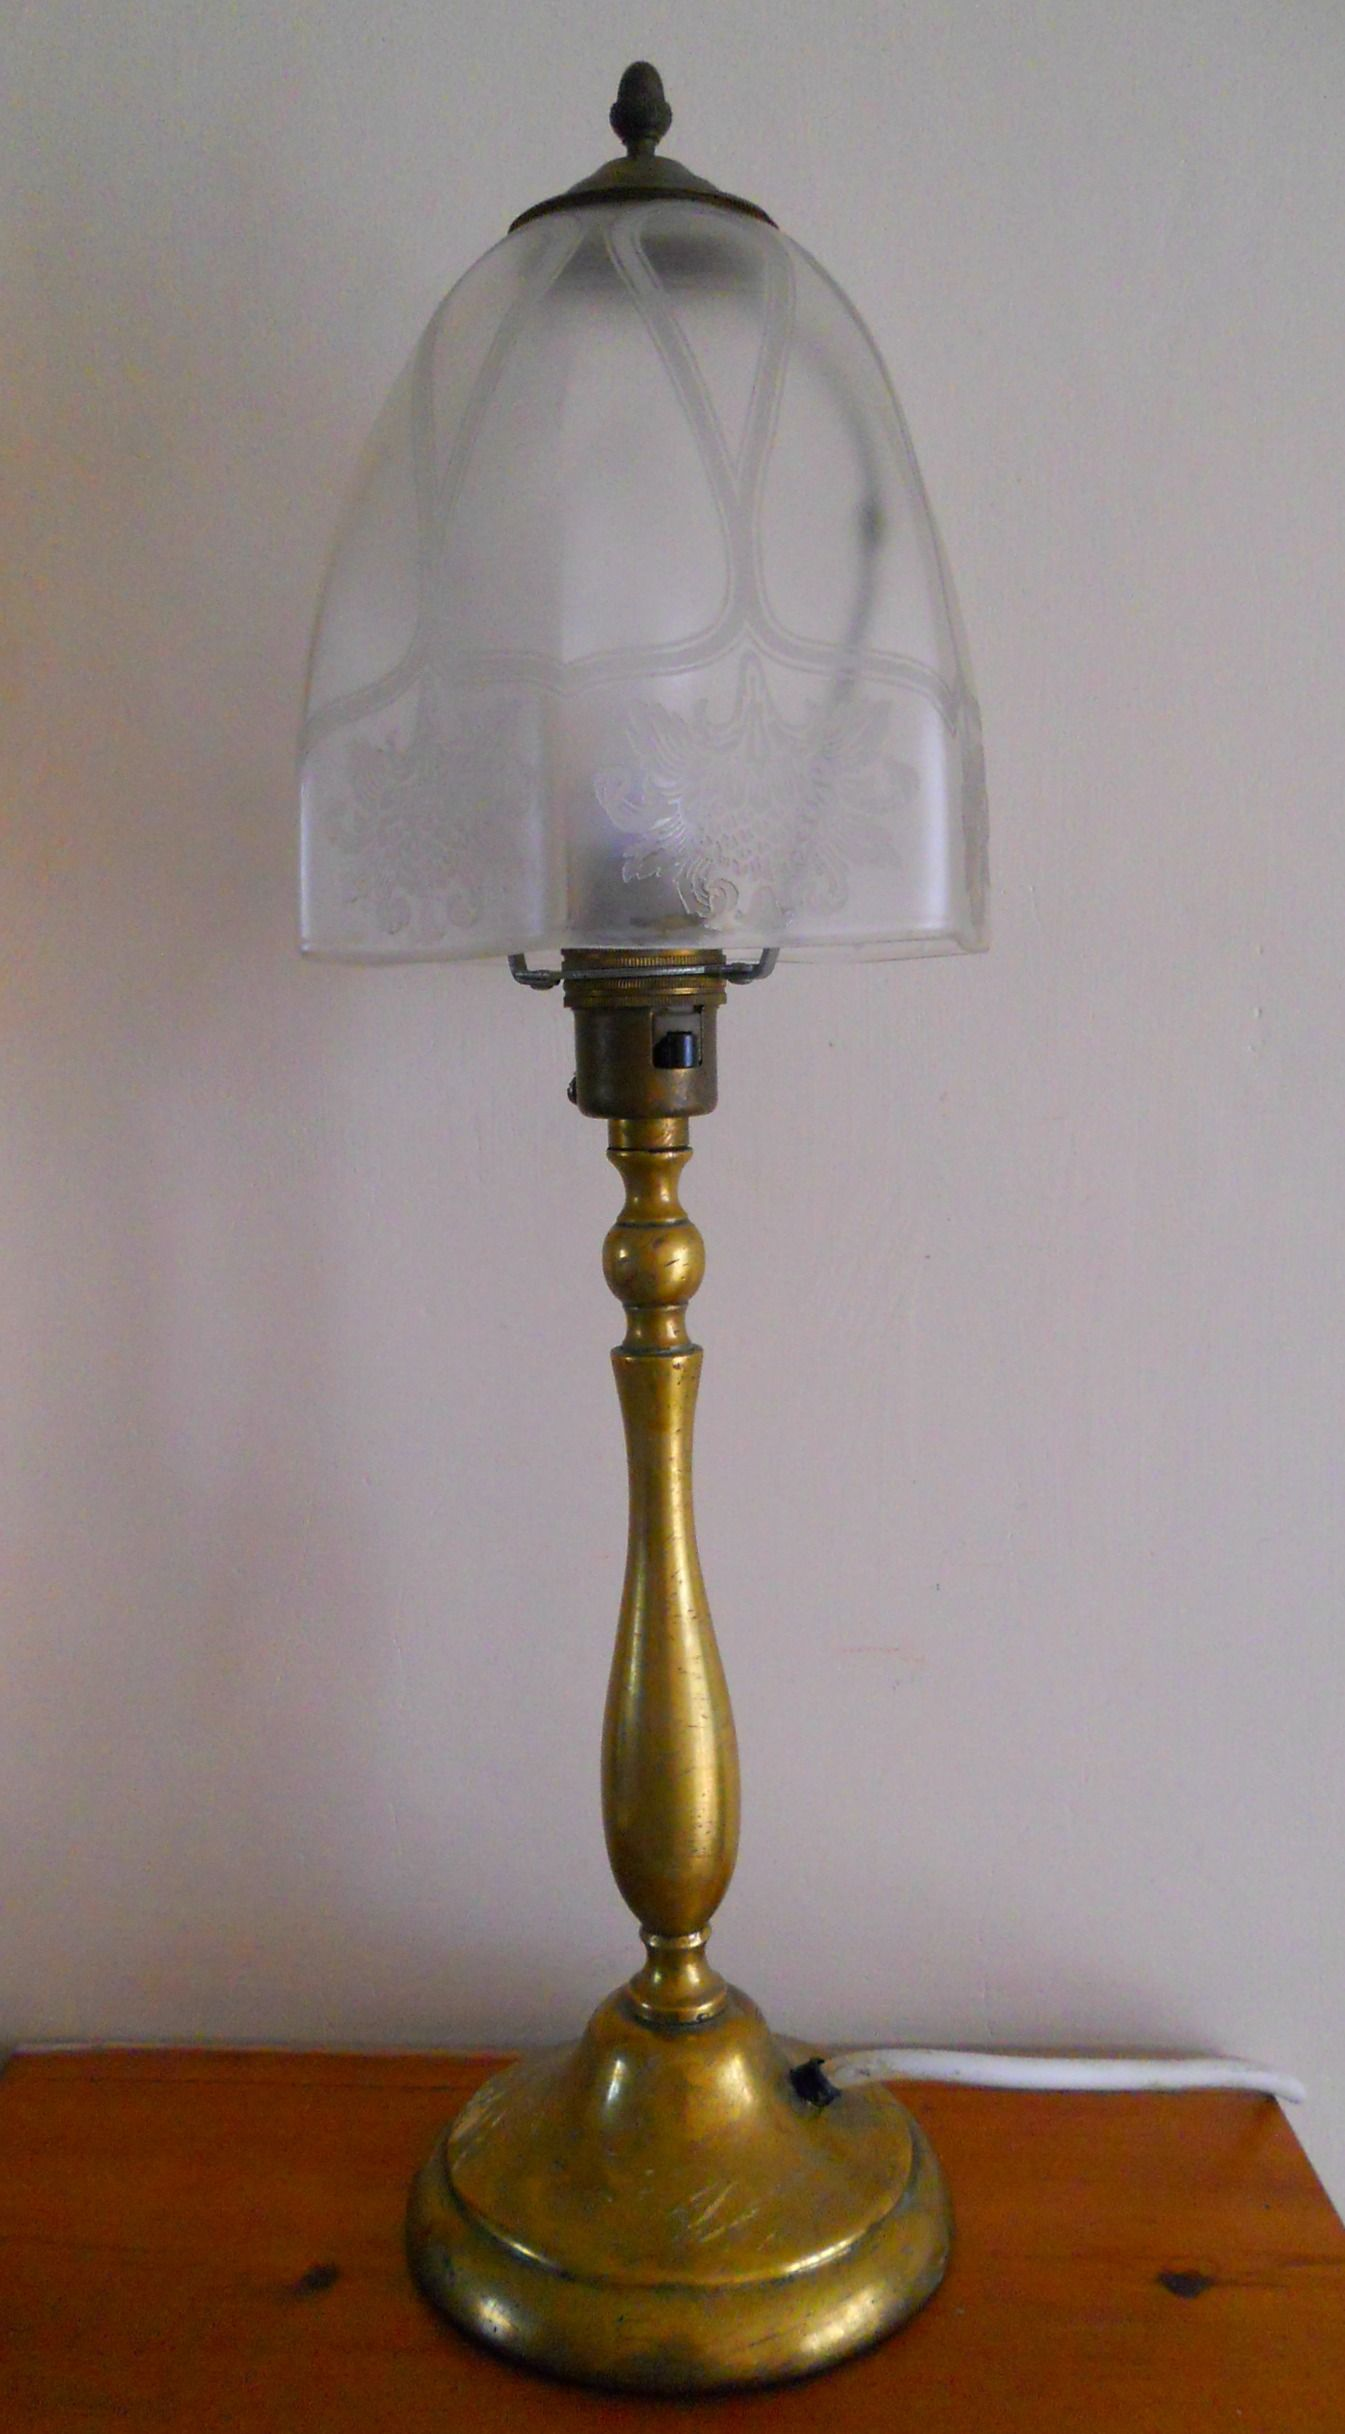 Vintage brass table lamp with frosted etched glass shade sold on vintage brass table lamp with frosted etched glass shade sold on my ebay site lubbydot1 geotapseo Image collections